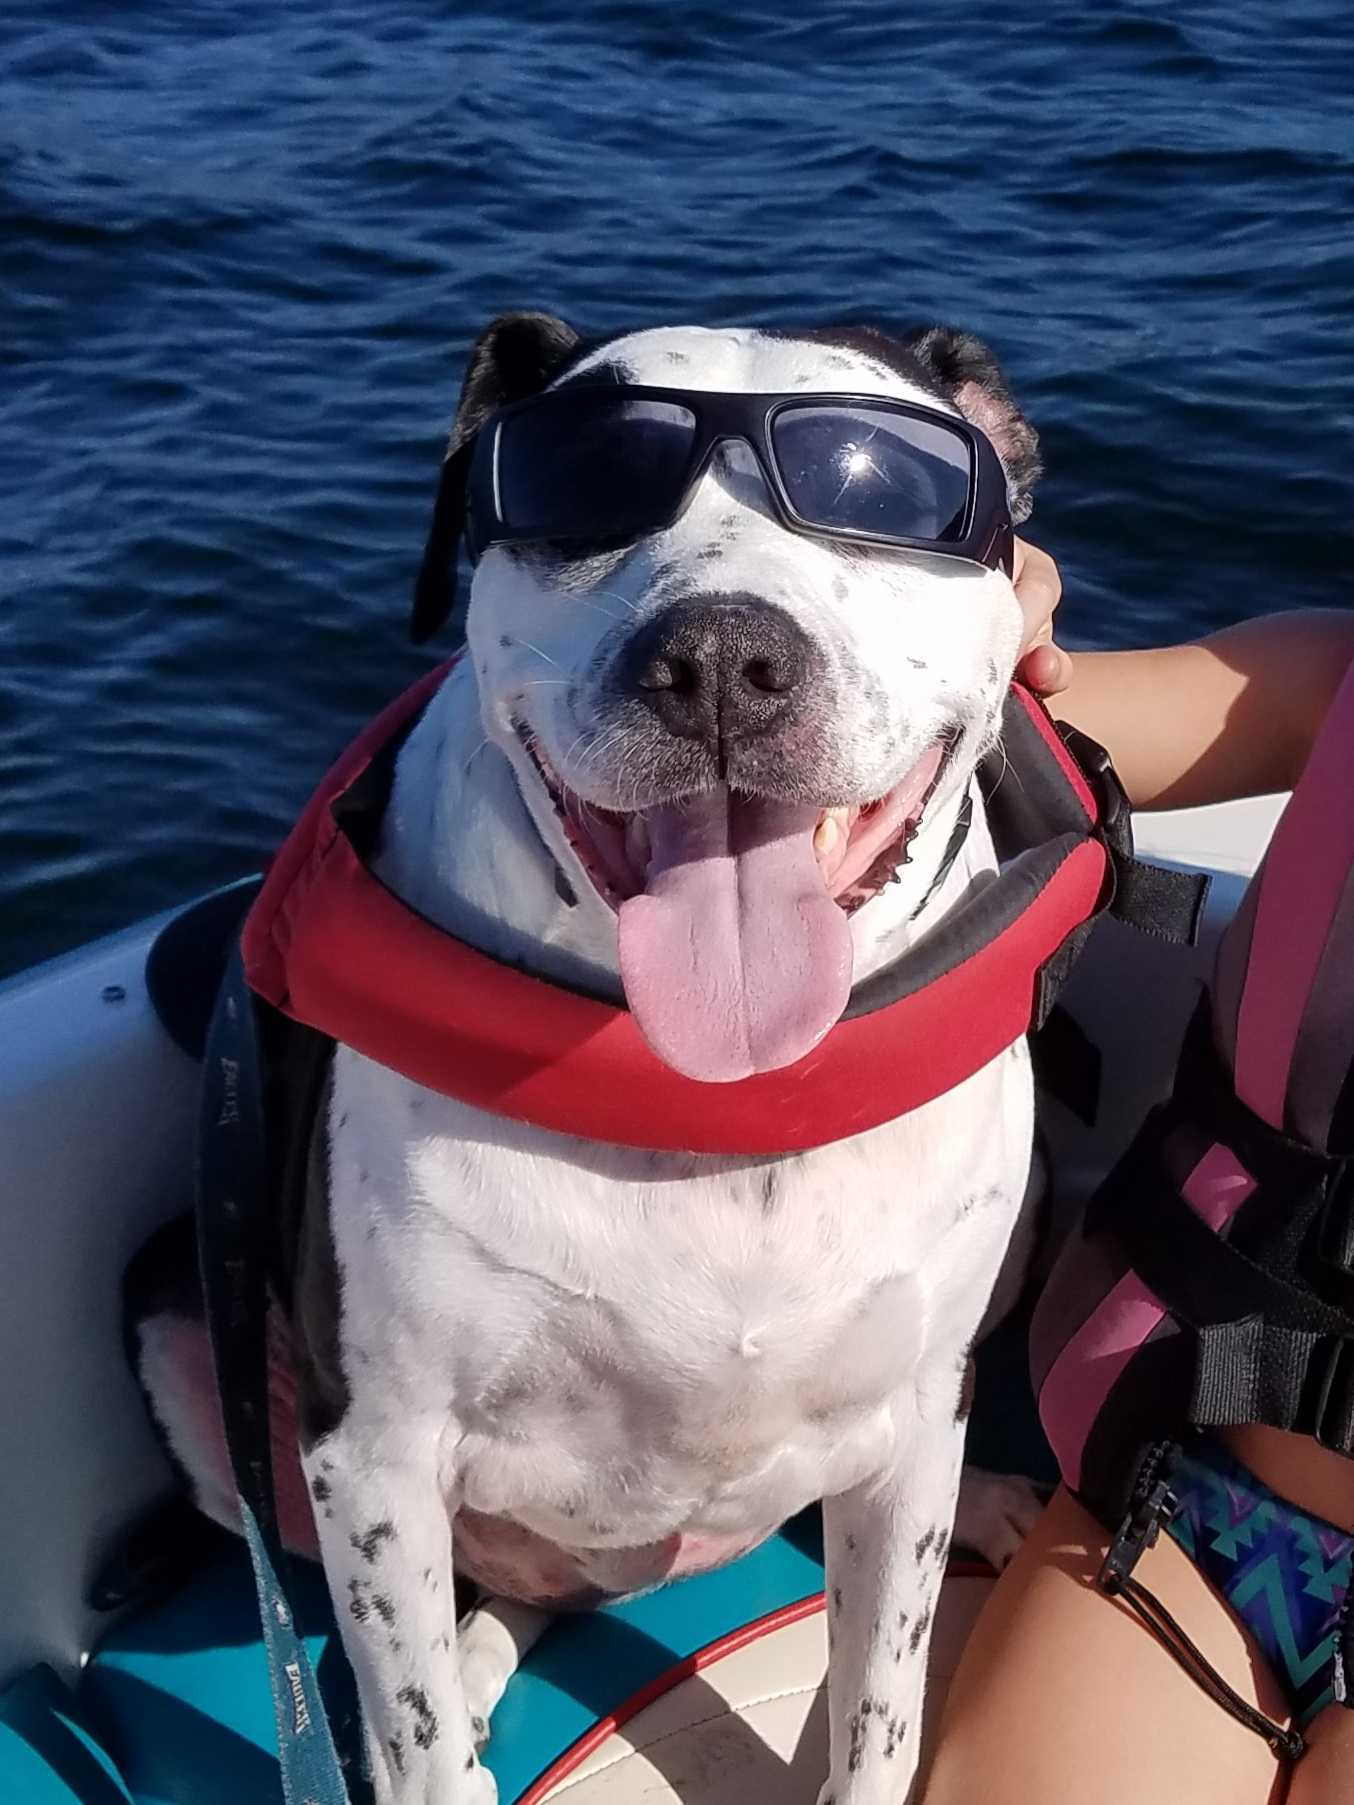 Dog sitting on boat with sunglasses on